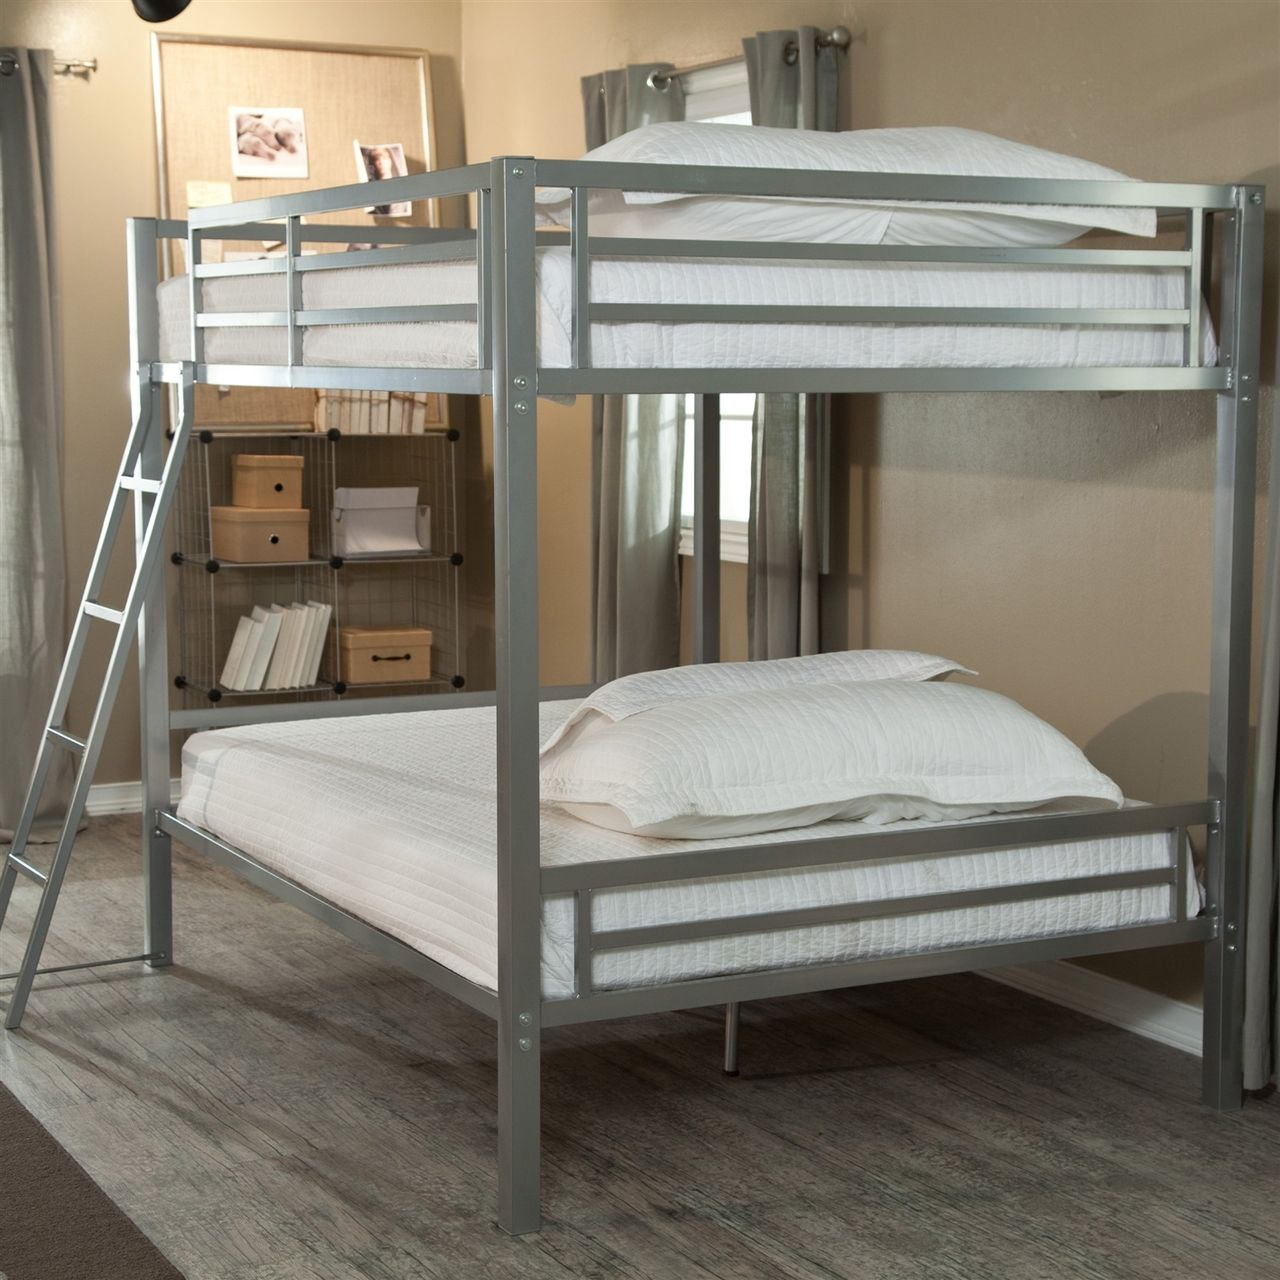 Full over Full Bunk Bed with Ladder in Silver Metal Finish